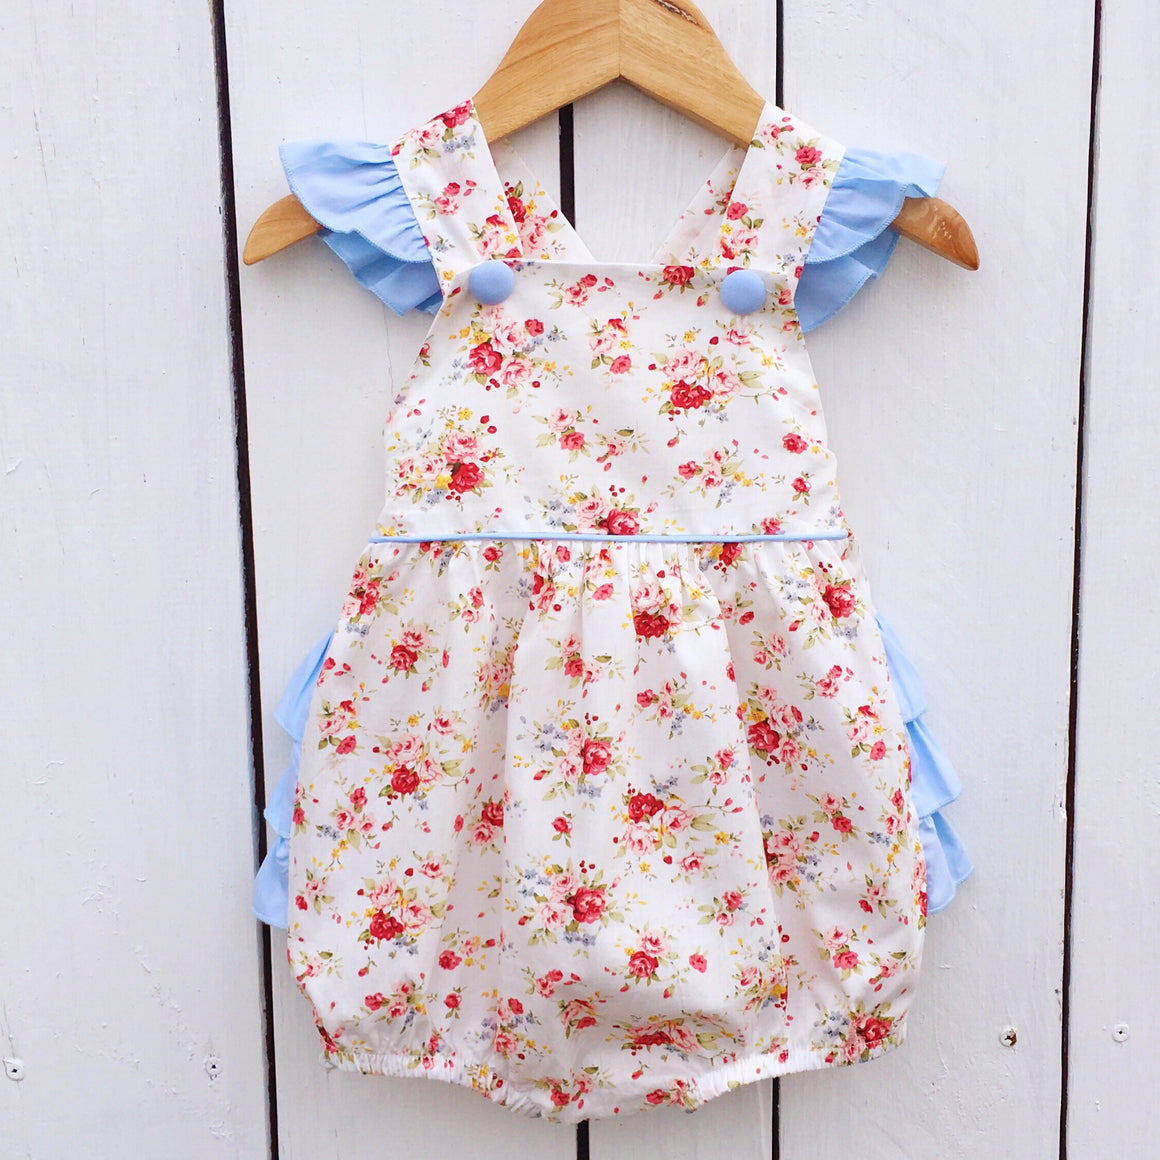 5c5f5d8a757 Smocked Bubbles and Rompers for Girls - Dressie Jessie Smocking